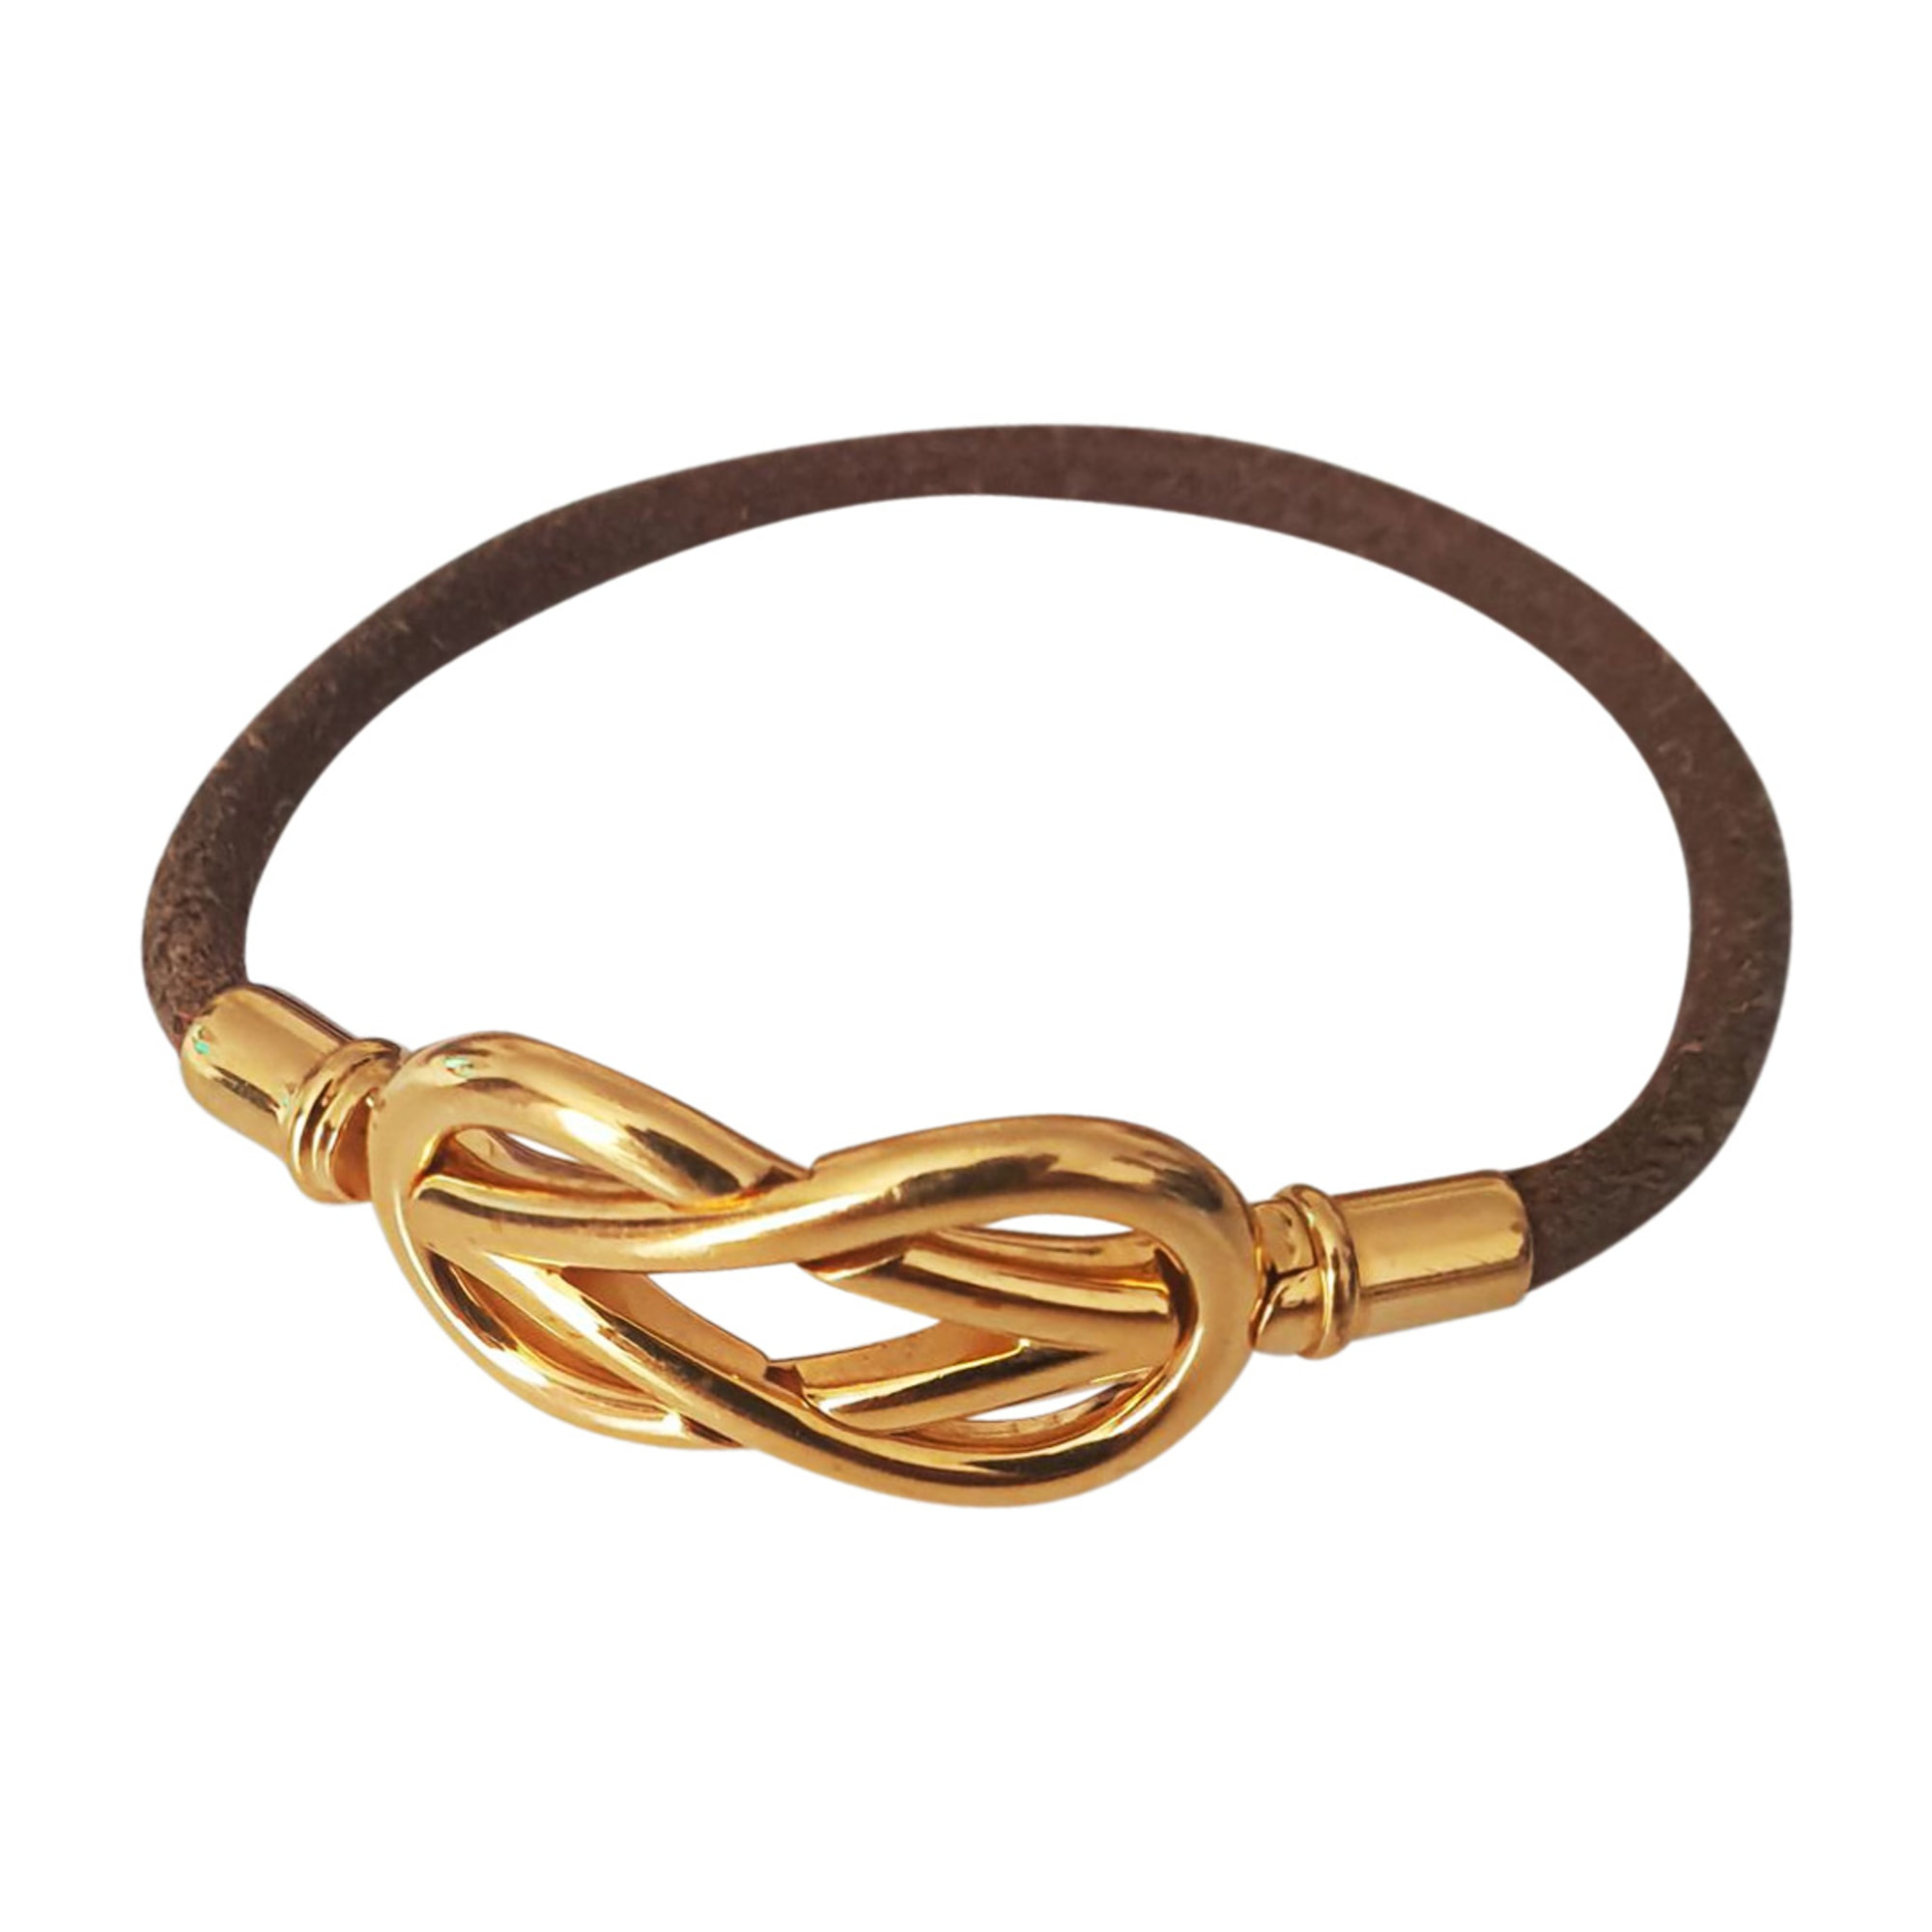 Bracelet HERMÈS Golden, bronze, copper